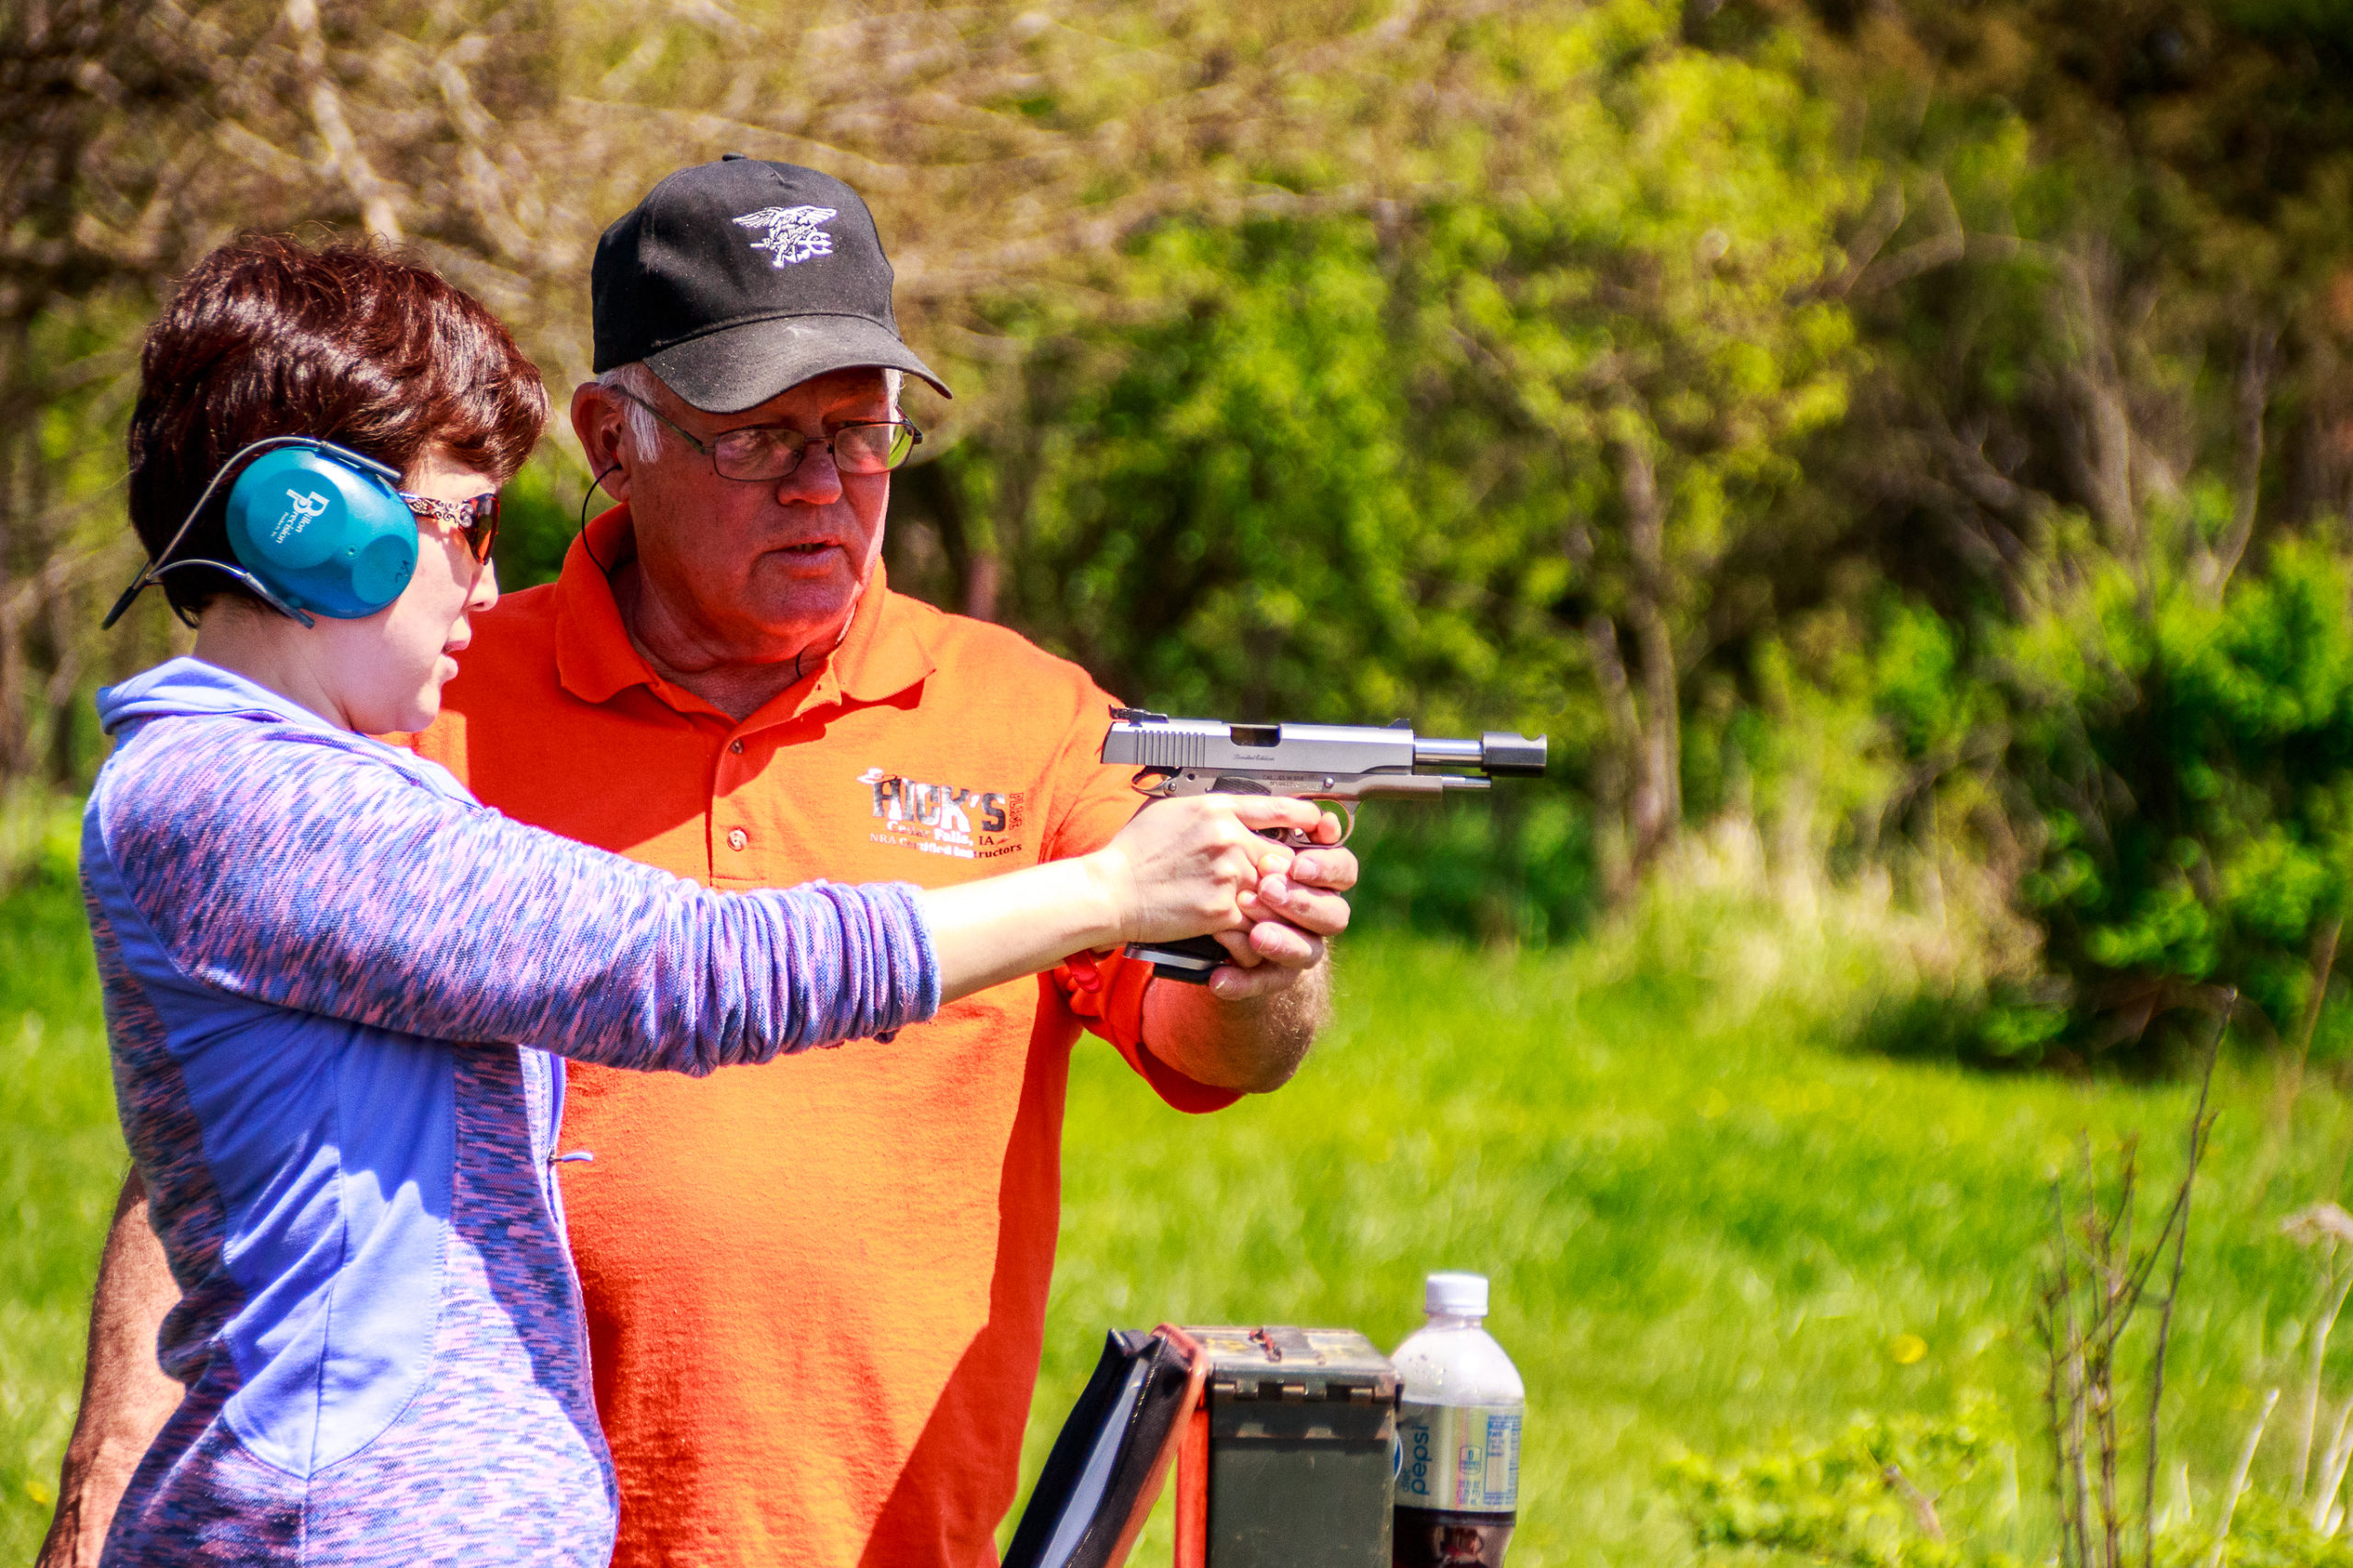 Shooting lessons at Hick's Place